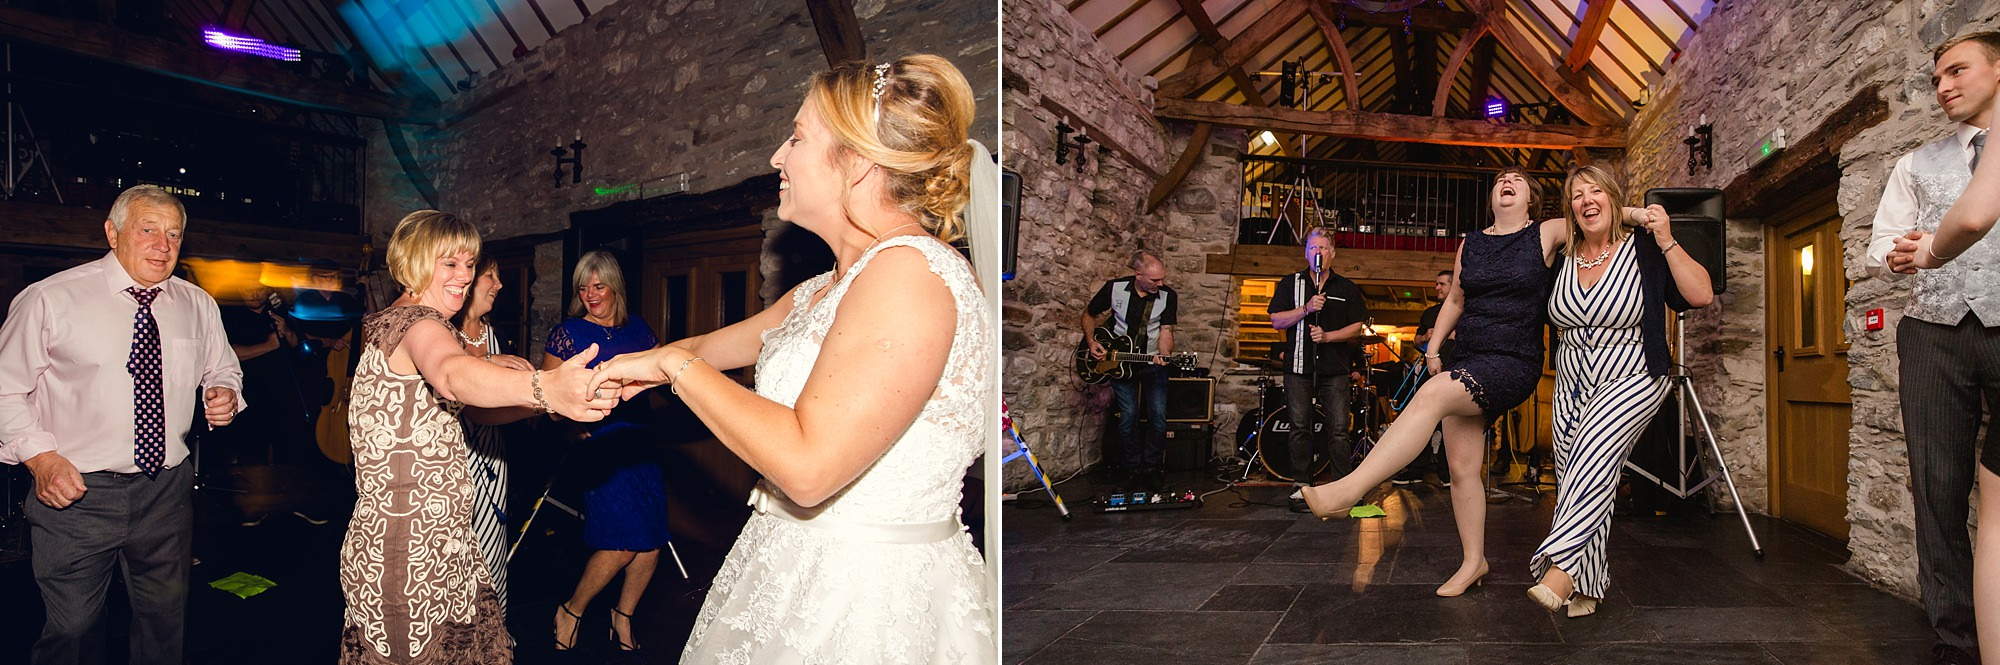 A fun wedding at Plas Isaf with guests dancing